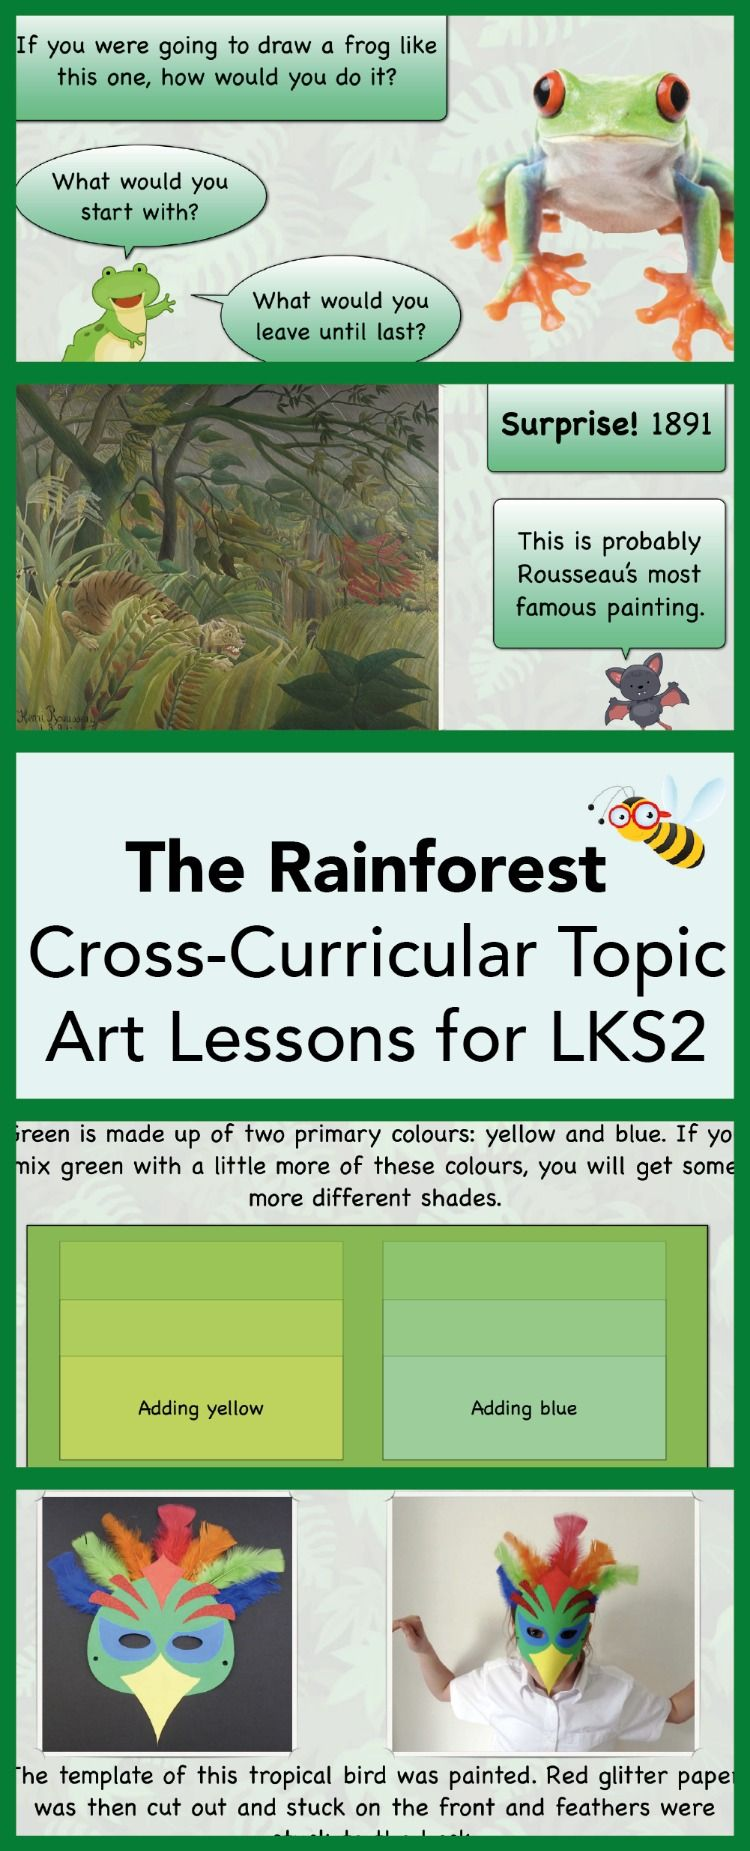 The Rainforest All ART Lessons in Topic Art lessons